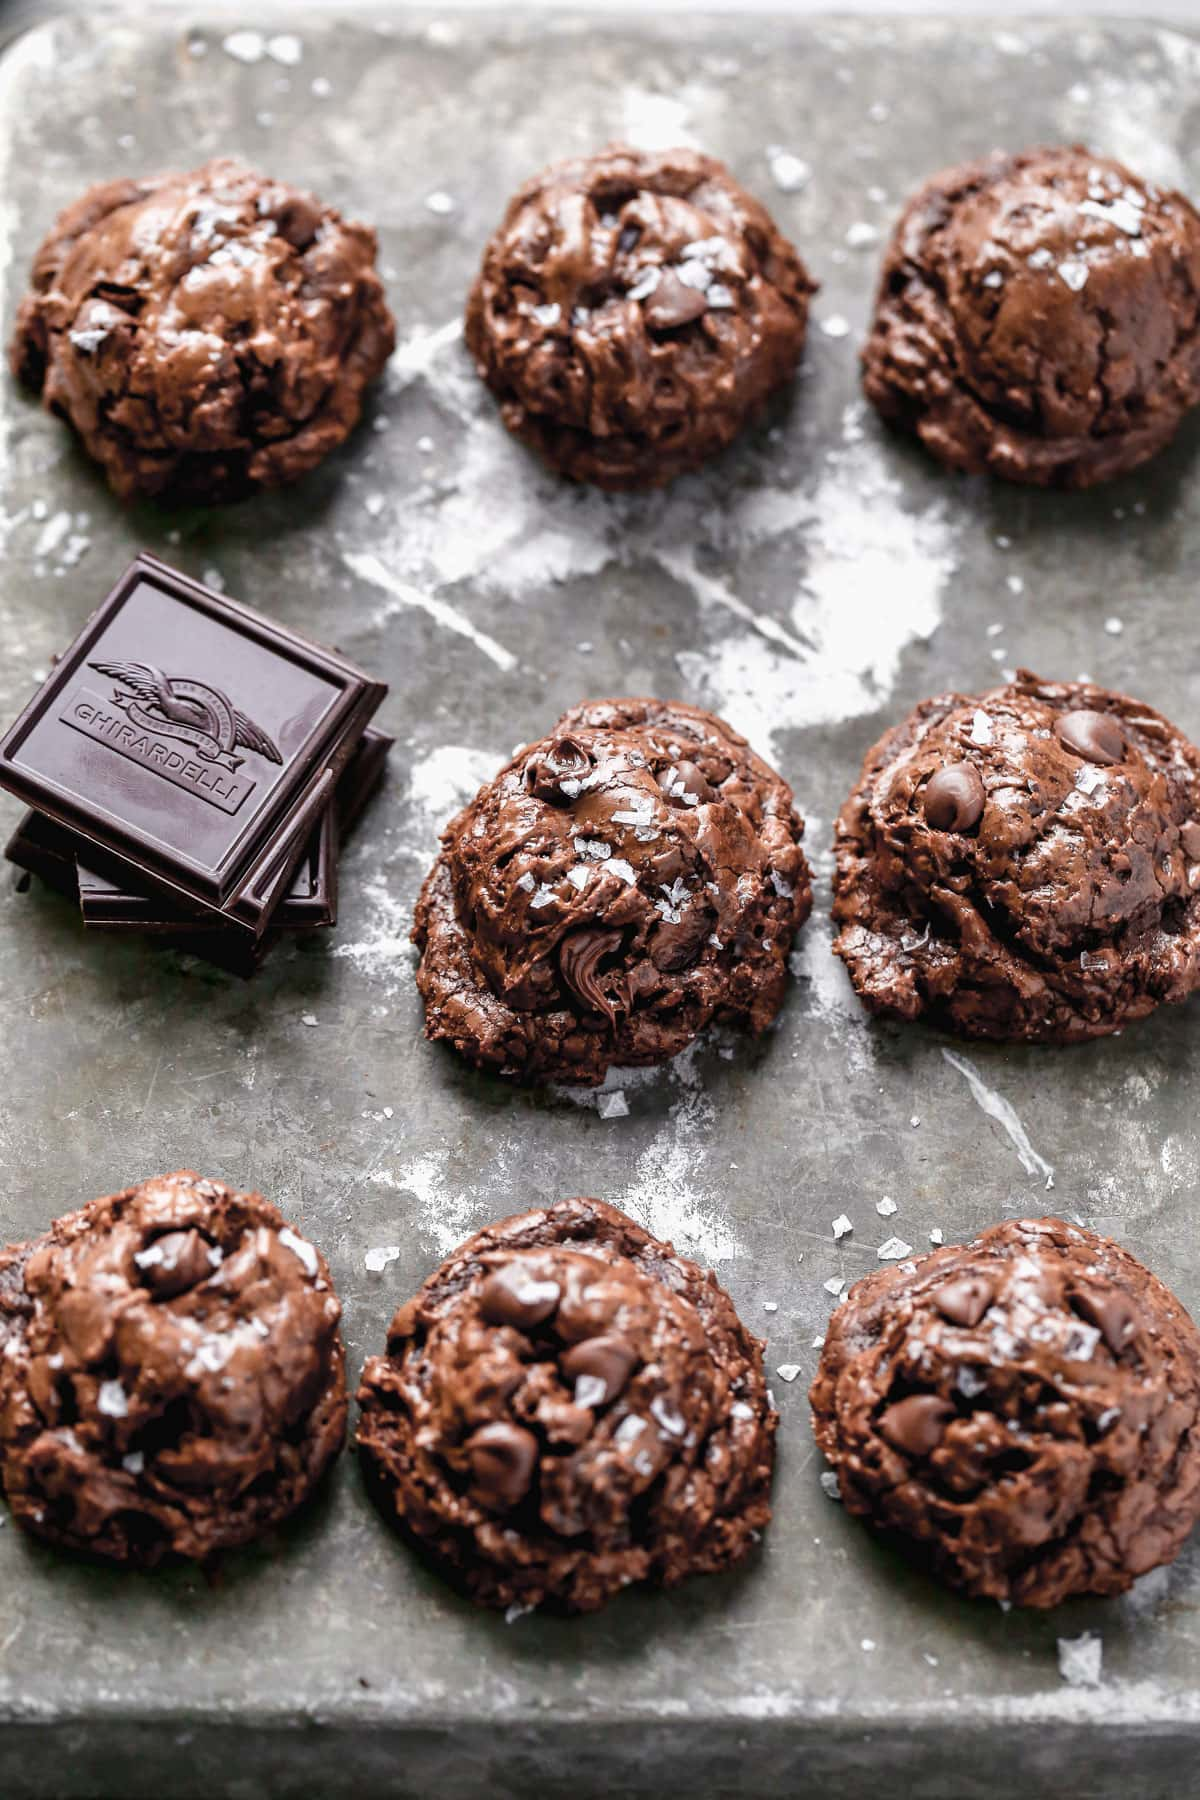 Chocolatey cookies with sea salt